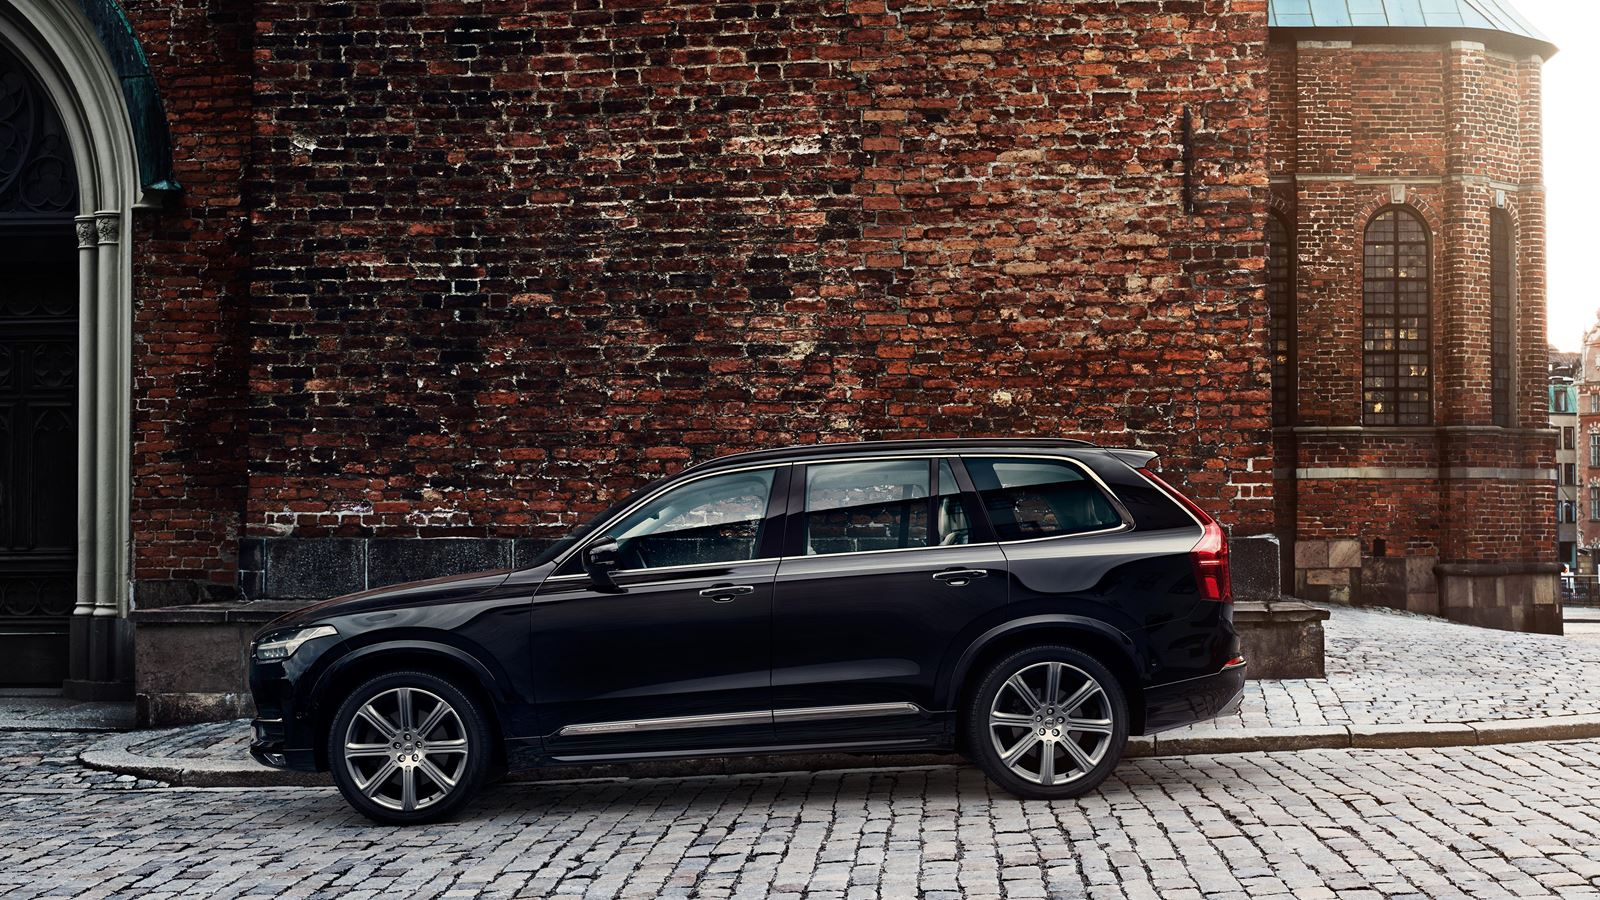 XC90 Exterior Side View